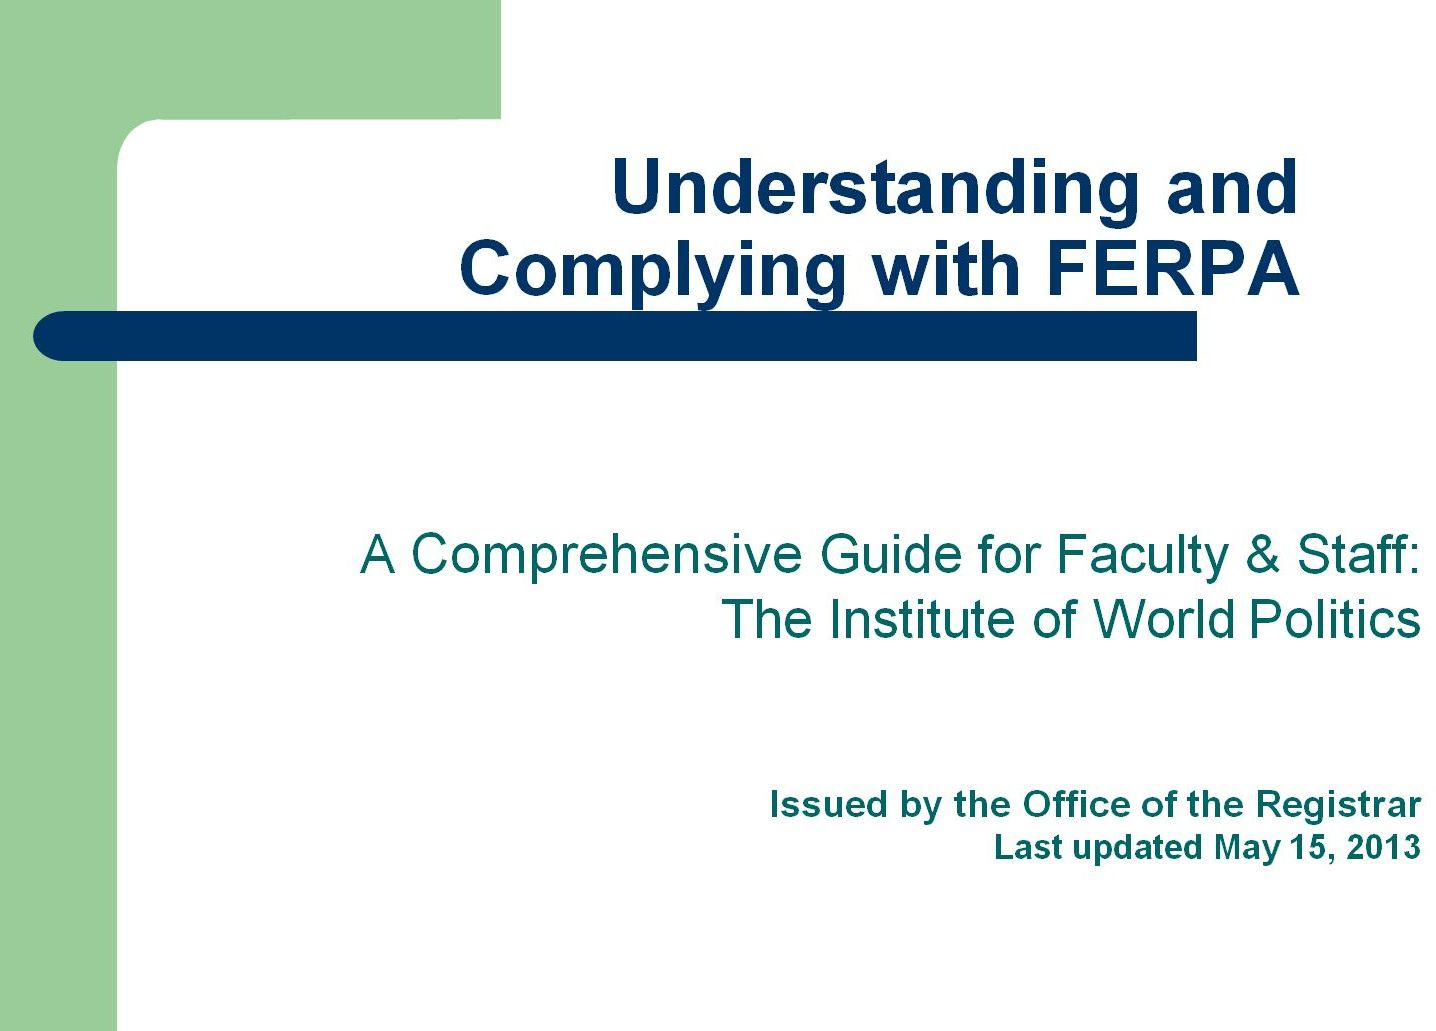 FERPA Training Guide for Faculty & Staff